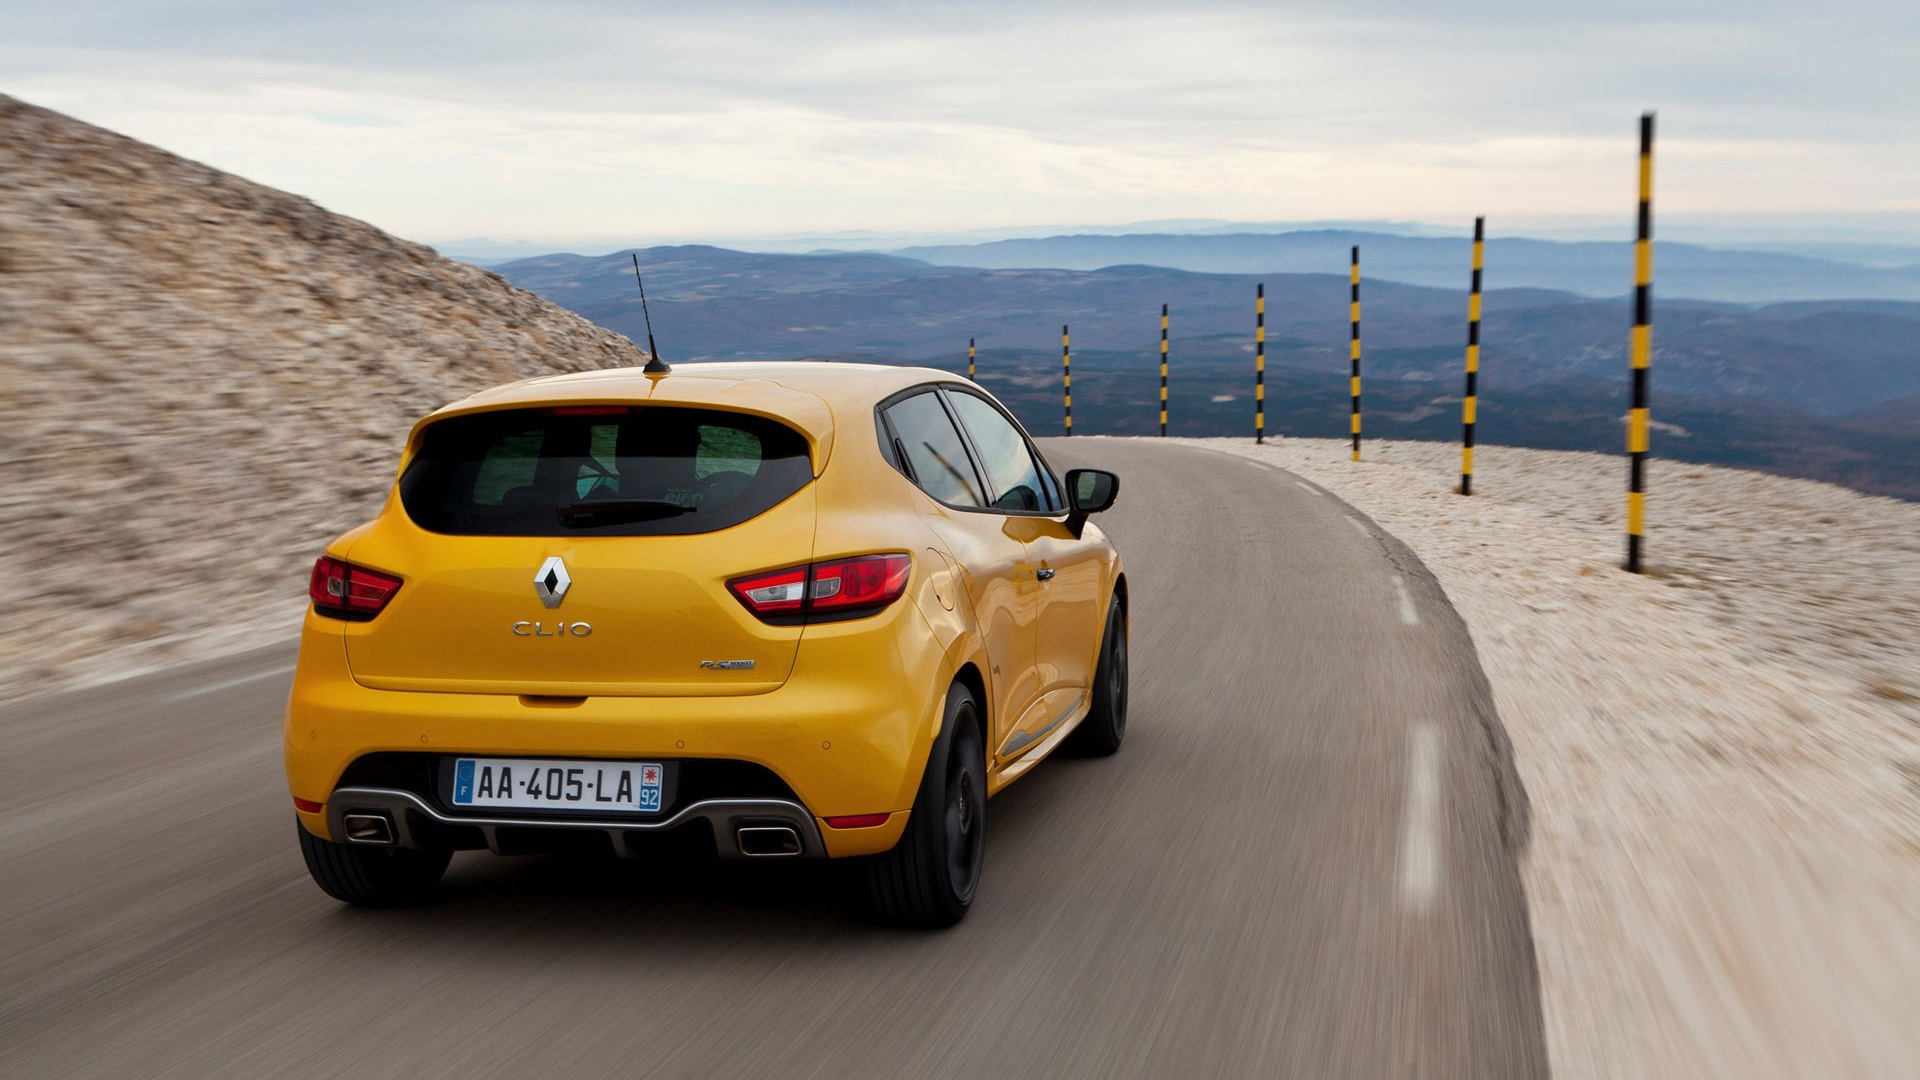 2013 Renault Clio Rs 200 Yellow Color Car Hd Wallpapers 5 1920x1080 Wallpaper Download 2013 Renault Clio Rs 200 Yellow Color Car Hd Wallpapers Auto Wallpapers V3 Wallpaper Site